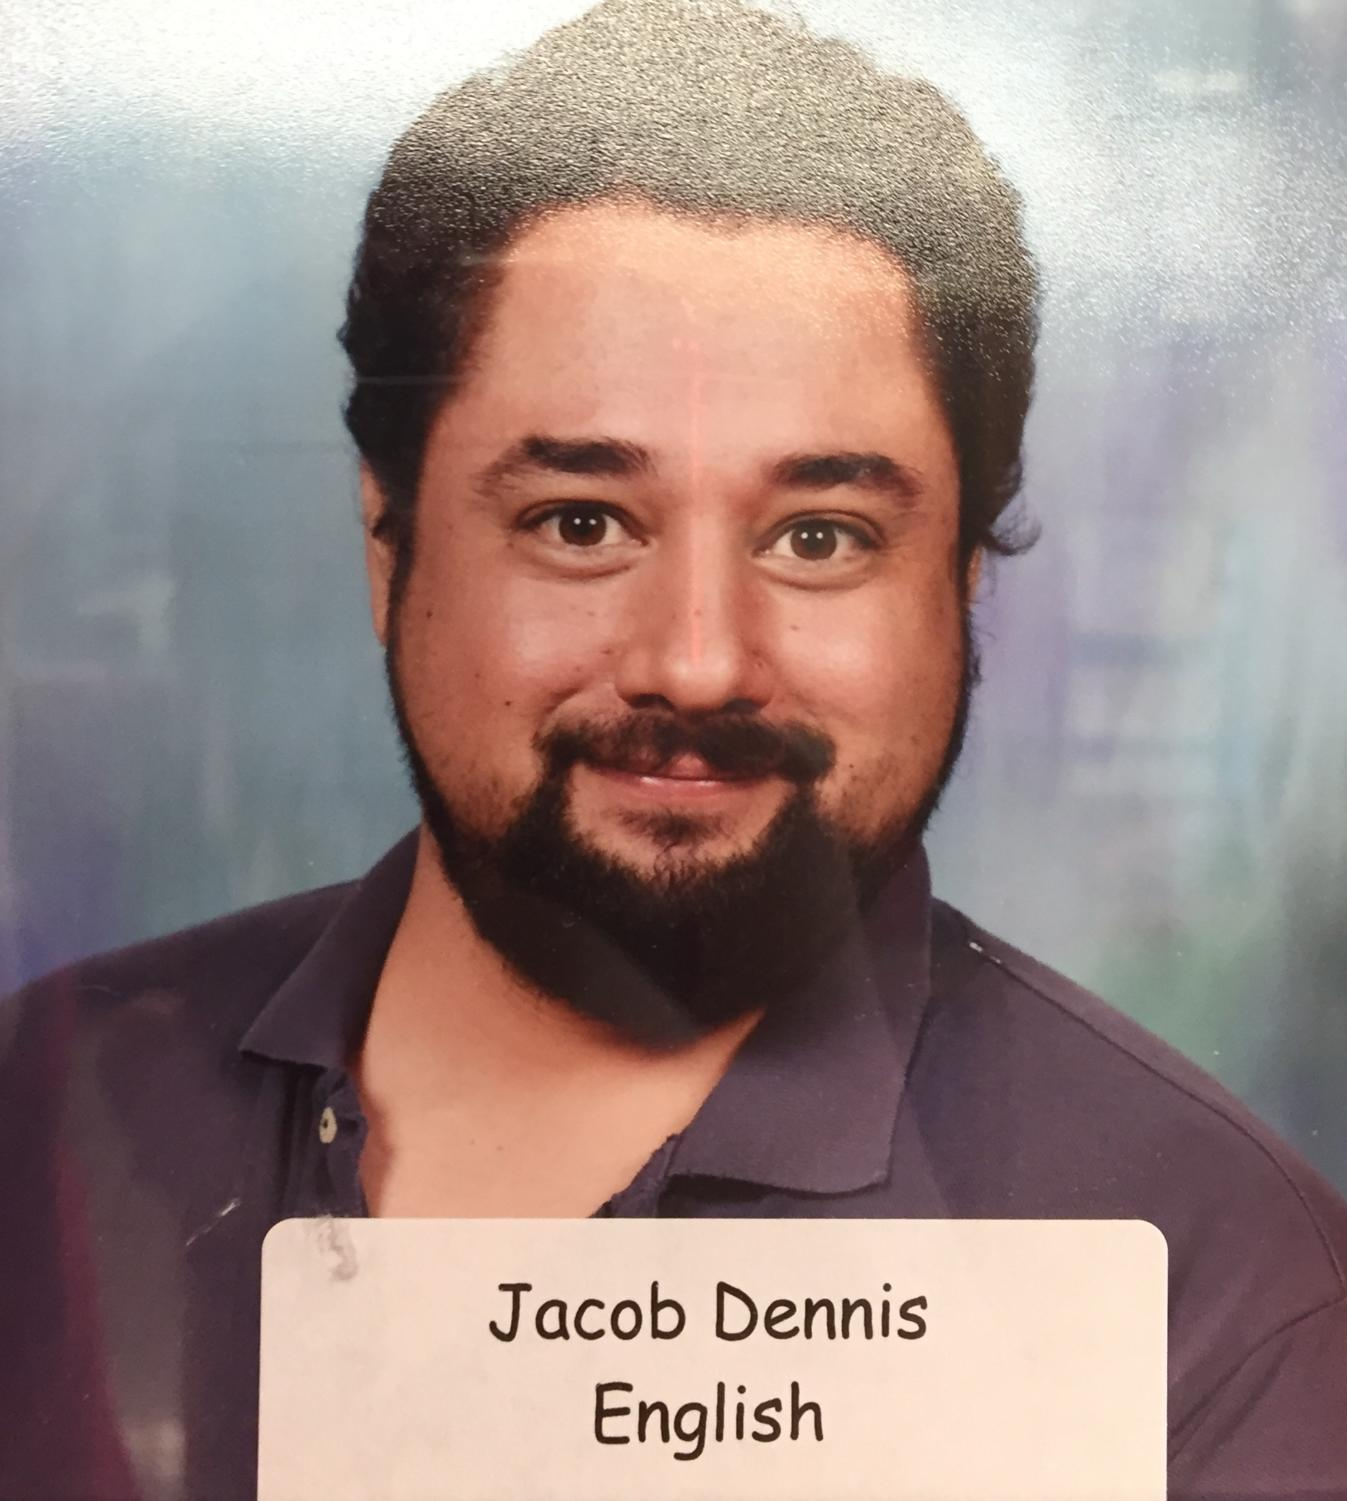 Mr. Dennis' staff picture taken in the summer of 2017